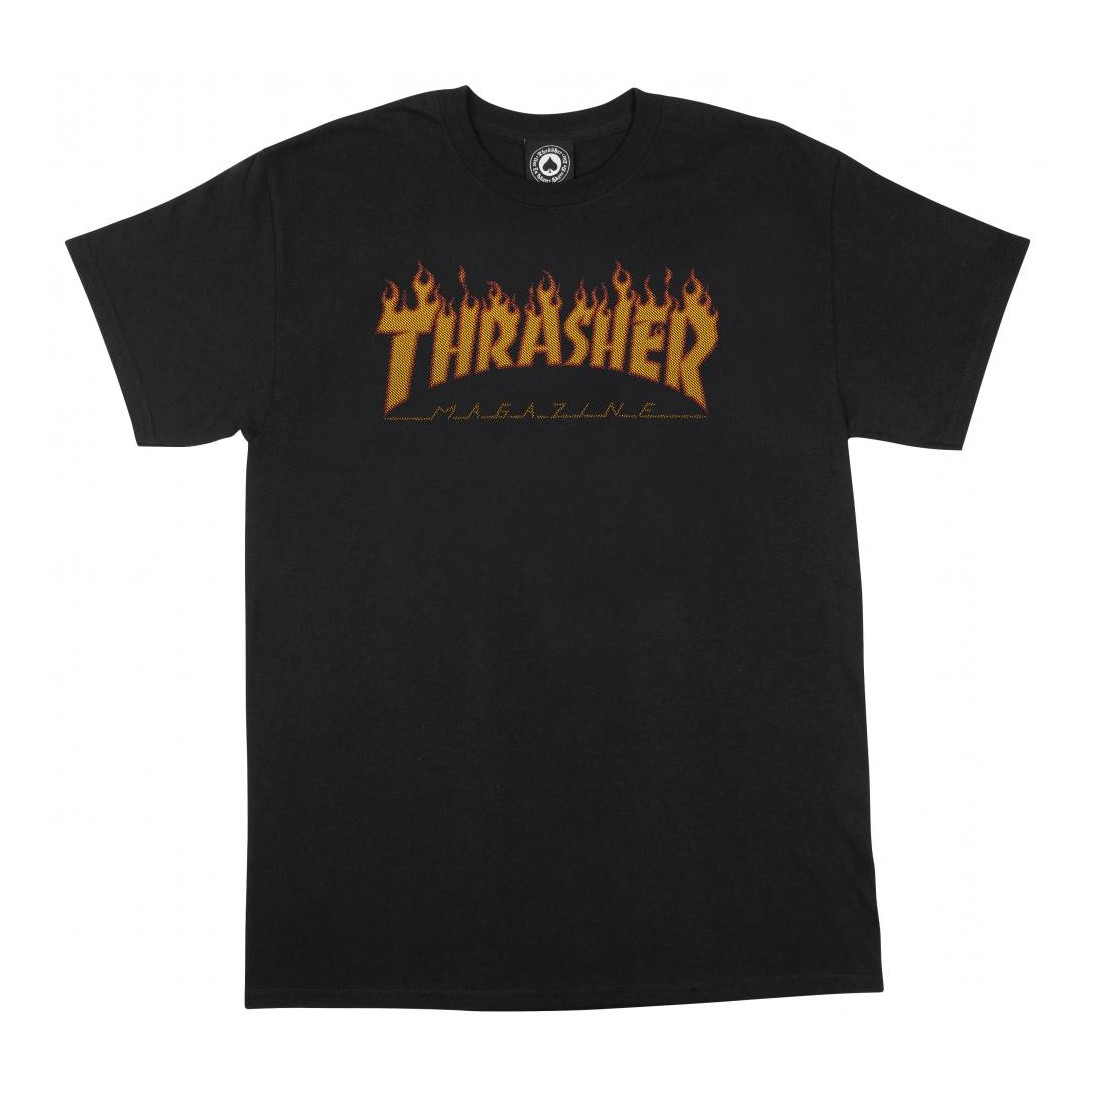 T SHIRT THRASHER flame halftone black